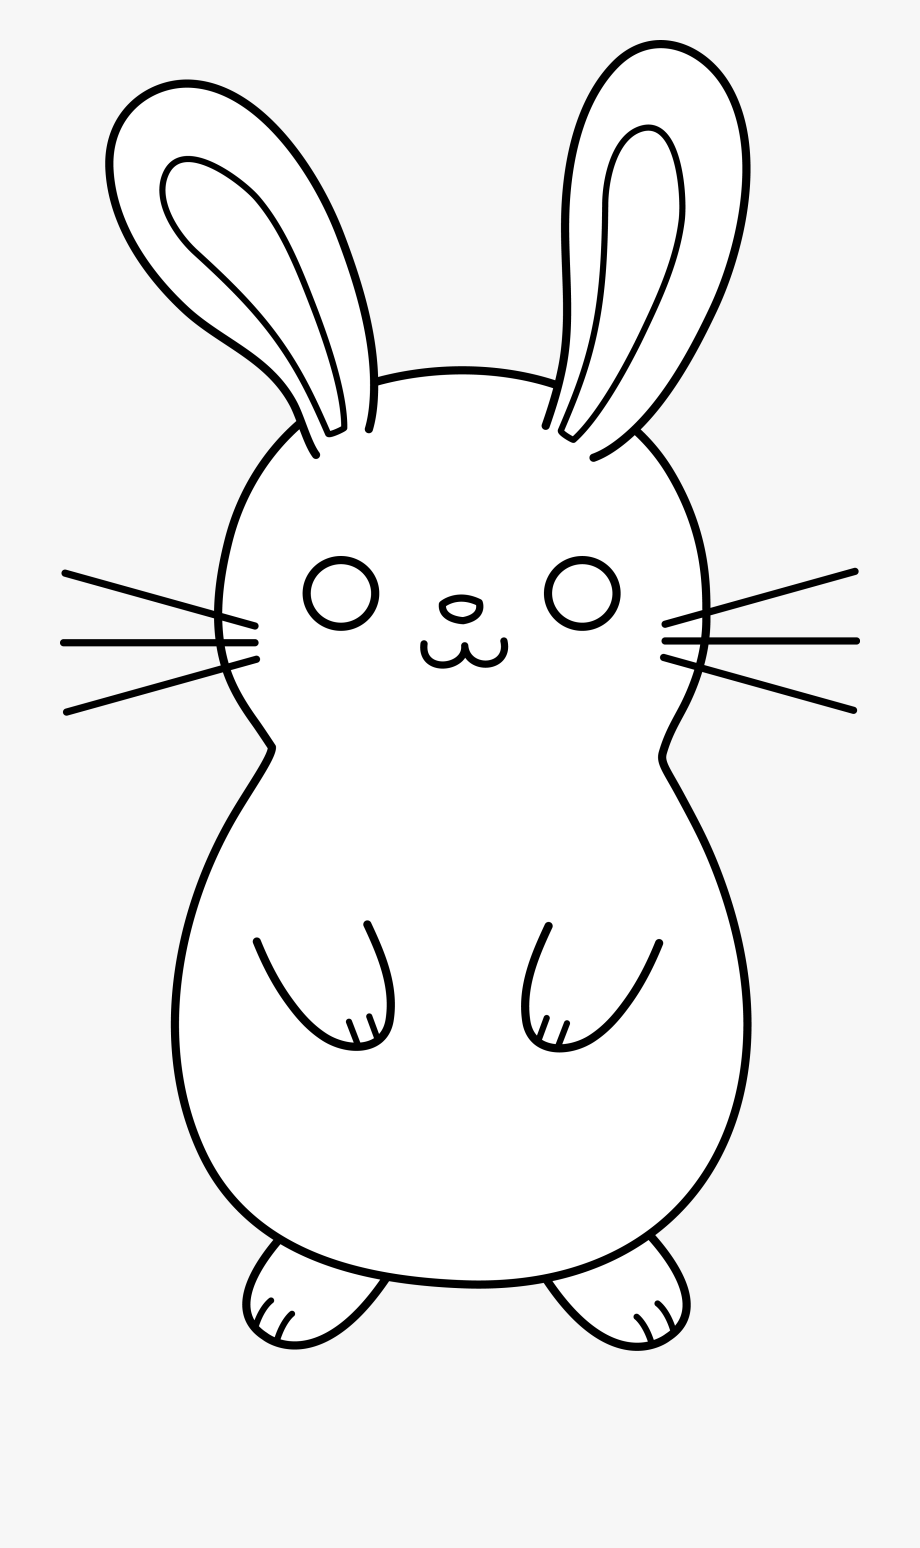 black and white rabbit drawing little chubby white bunny rabbit clipart clipart black black white and rabbit drawing